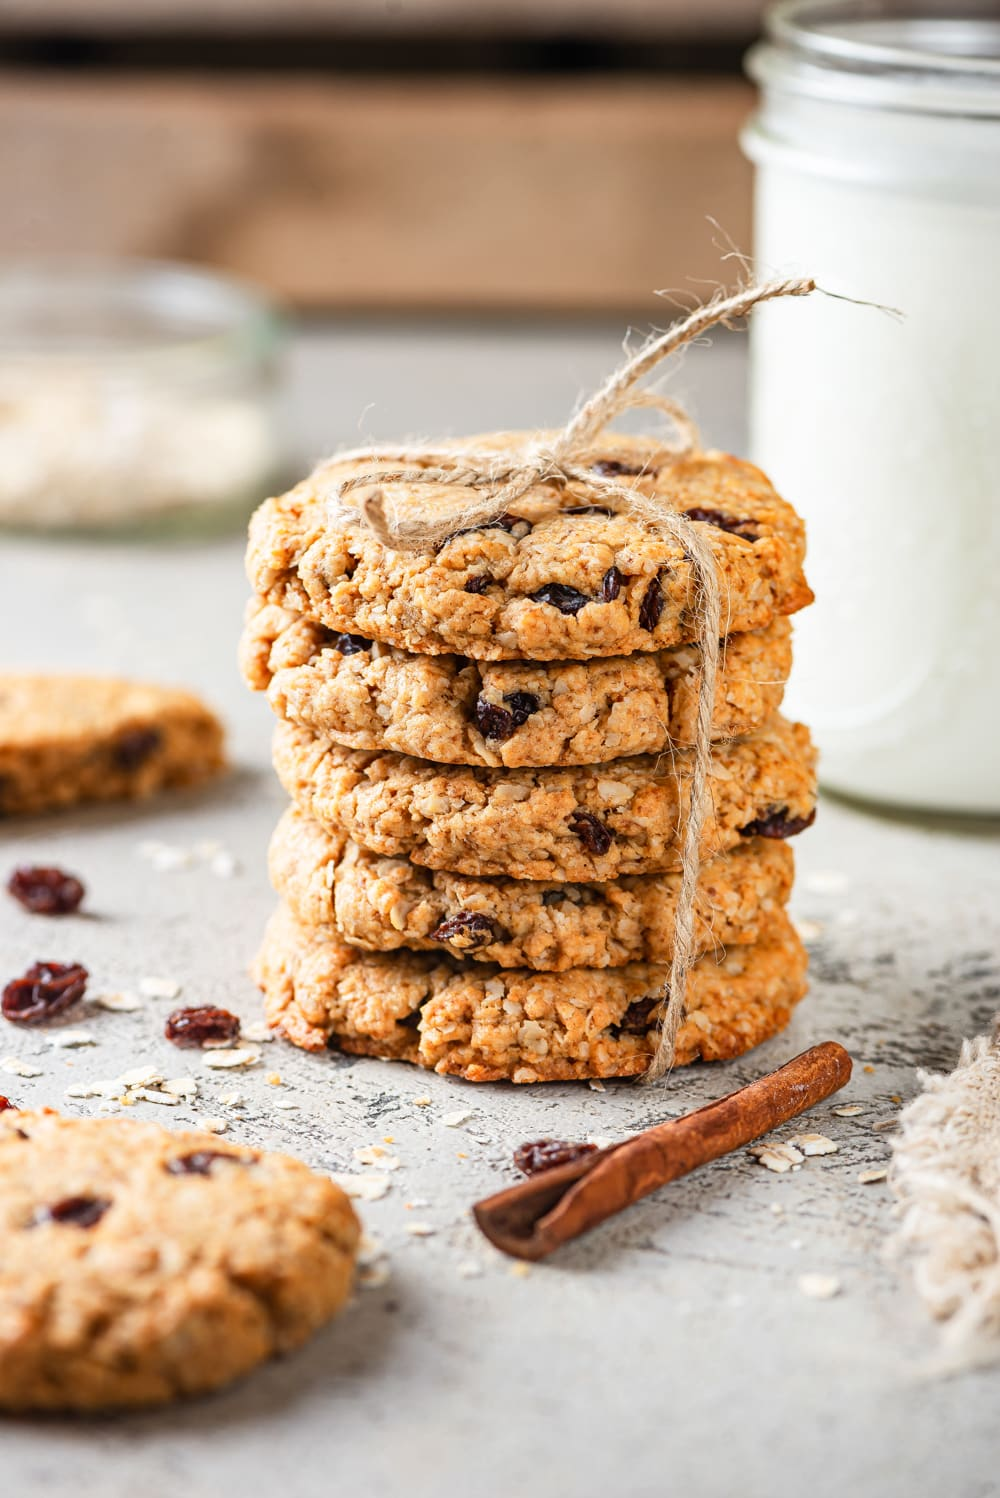 Five vegan oatmeal raisin cookies stacked on top of each other with a yarn rope wrapped around the cookies on both sides and tied in a knot on top, on the top cookie. A glass jar of milk is set behind the cookies to the right and a half a cookie is to the left behind the stack and the other half is in front of the stack. A cinnamon stick is directly in front of the stack of cookies and everything is on a grey counter.